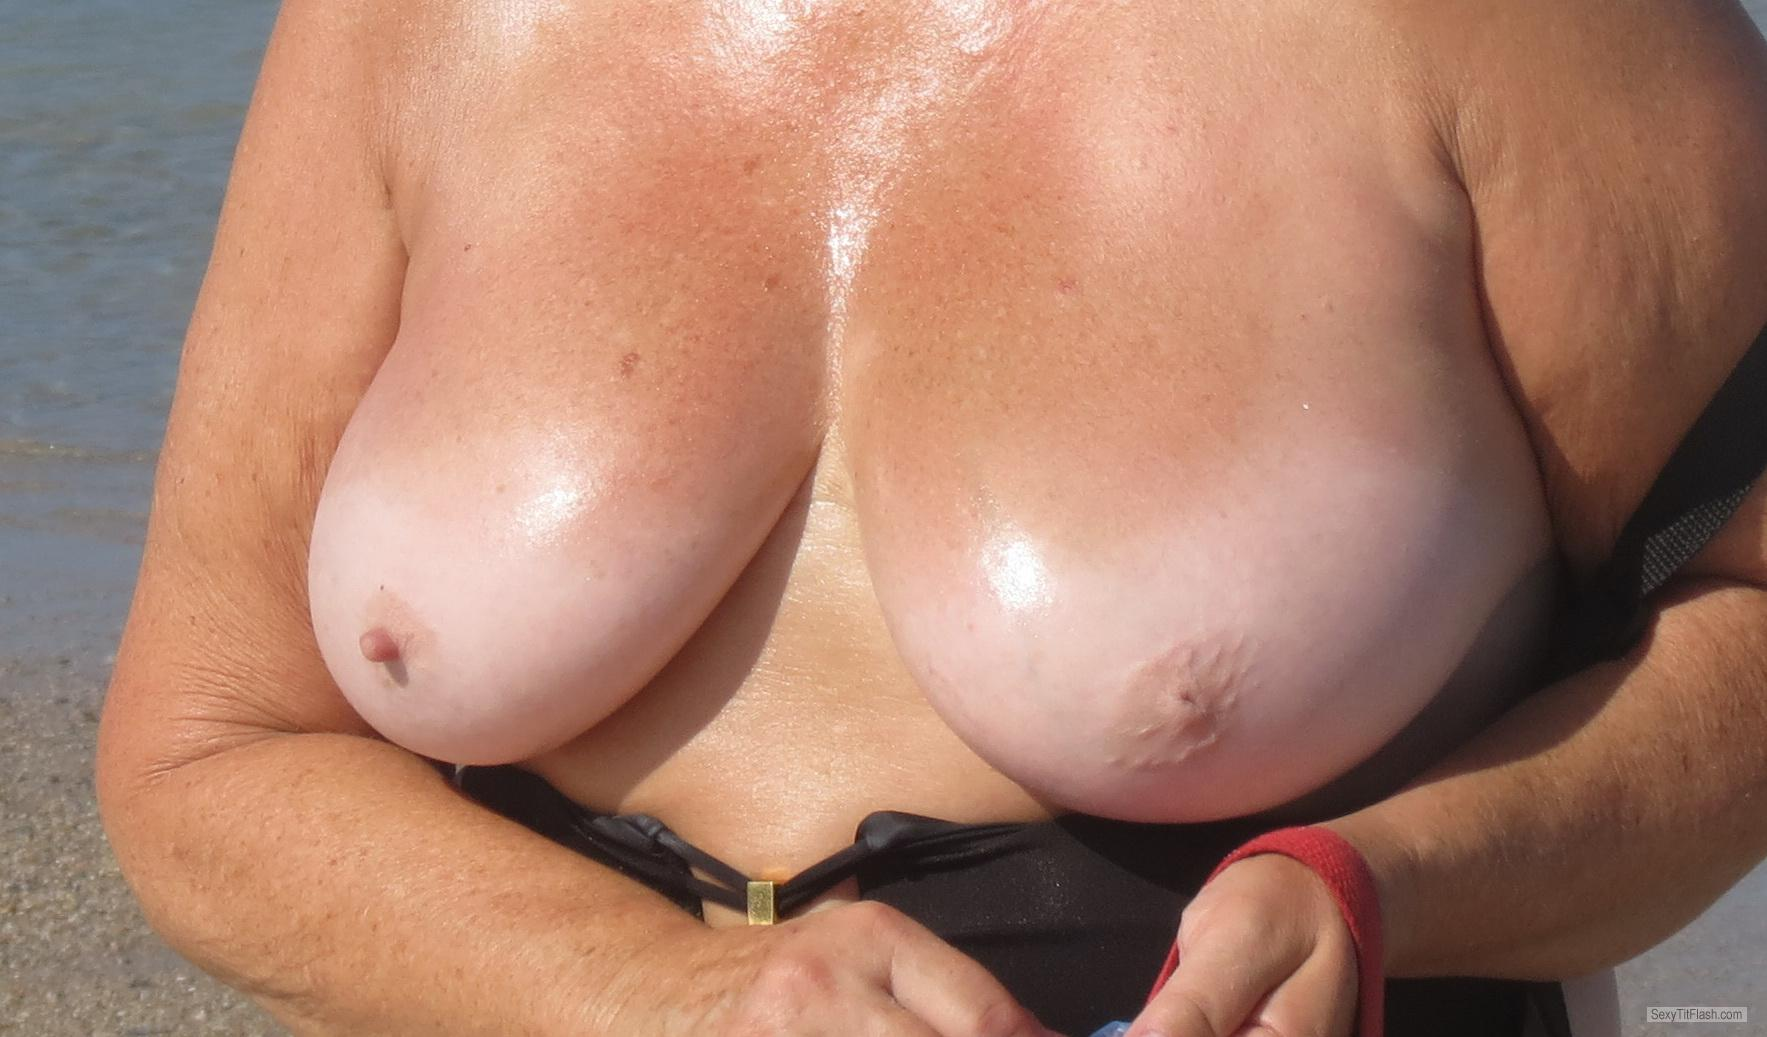 Tit Flash: Wife's Tanlined Big Tits - Ms B from United States